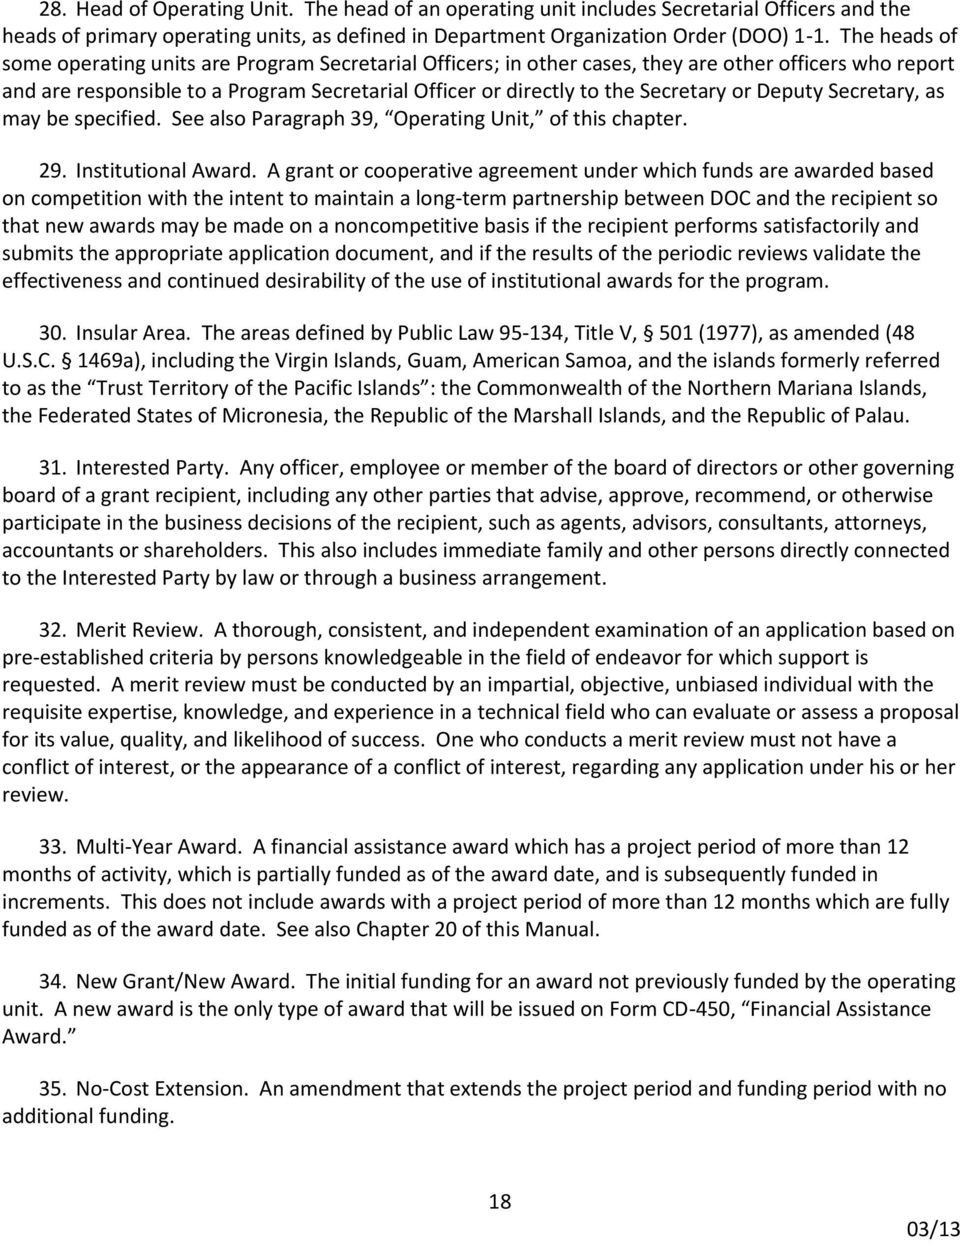 Department Of Commerce Grants And Cooperative Agreements Manual Pdf